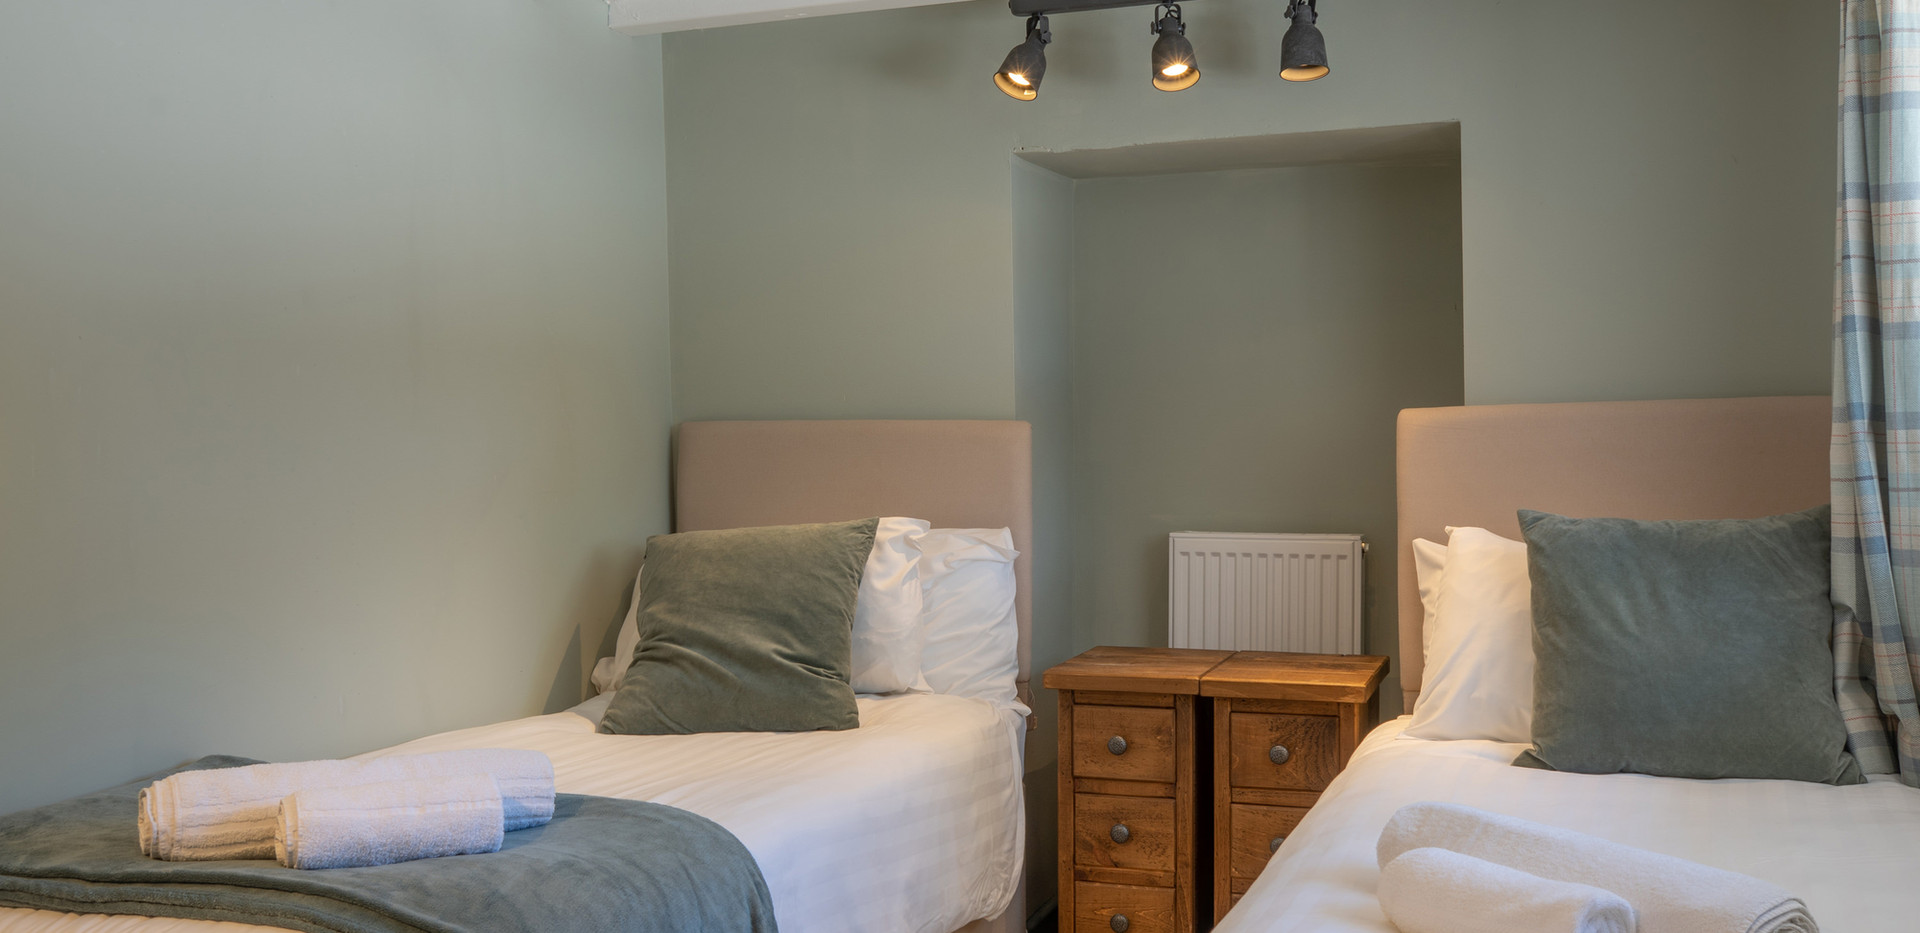 Dovedale bedroom 2 .jpg